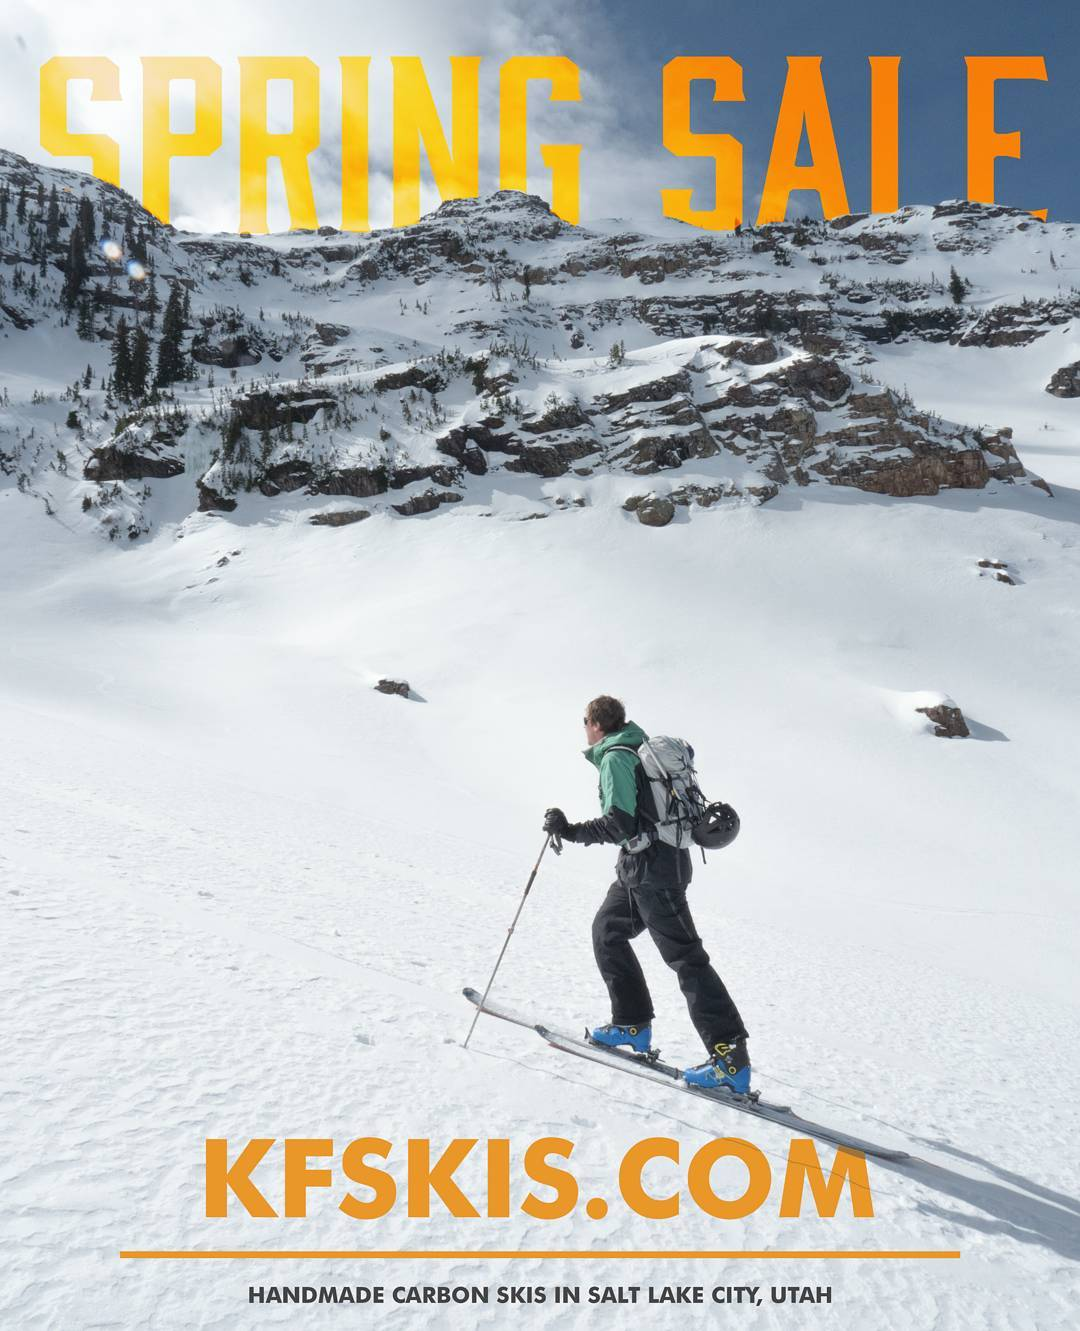 Still plenty of snow out there. Get yourself a pair of fresh, handmade carbon skis for up to 40% off! #kfskis |kfskis.com|